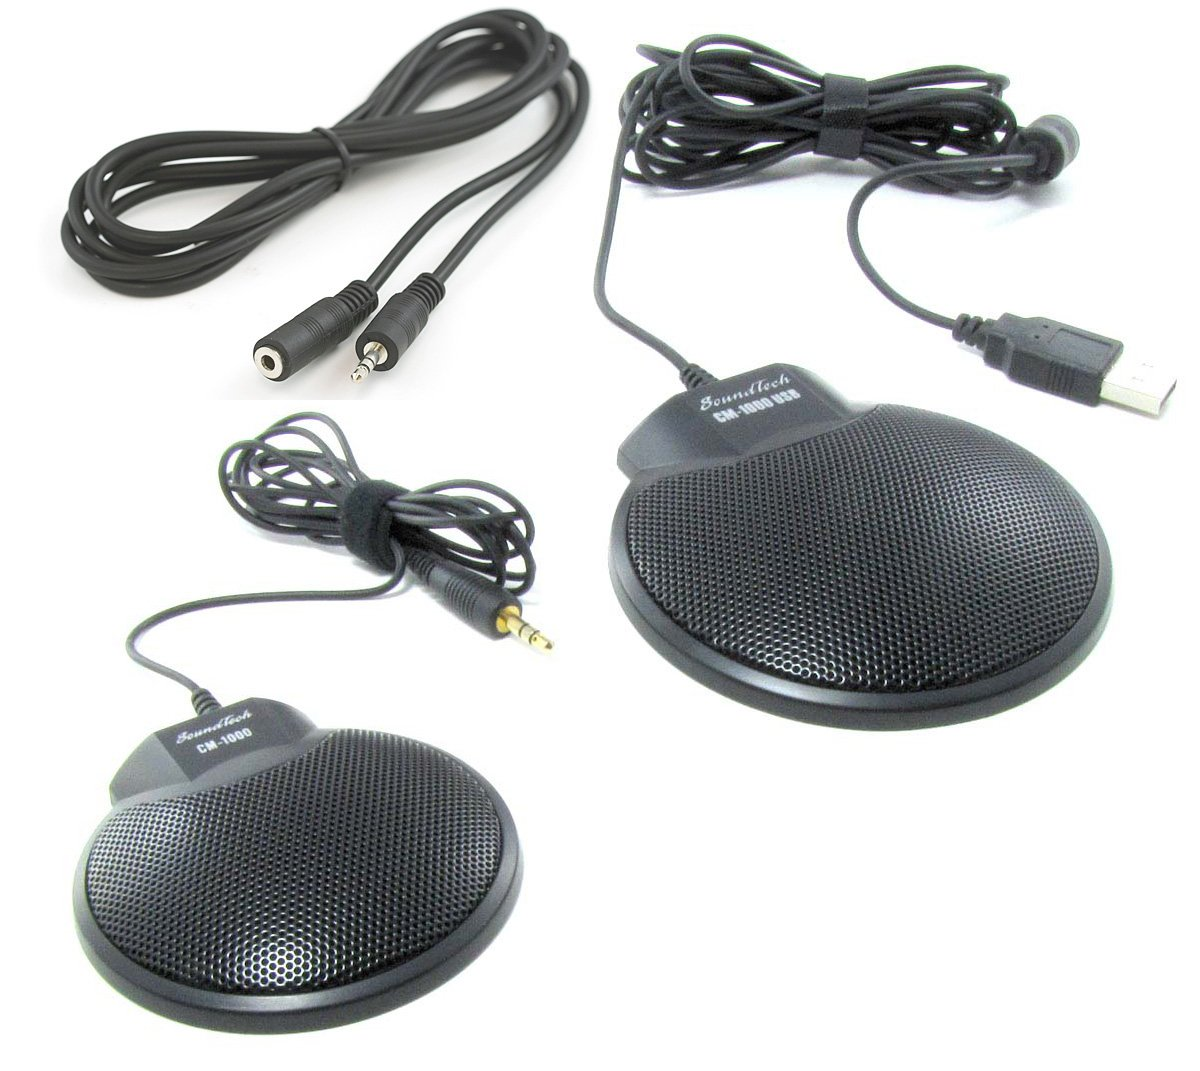 Sound Tech CM-1000USB & CM-1000 (pack of 2) Conference Meeting Microphone with 6 feet Extension Cord AAAPrice